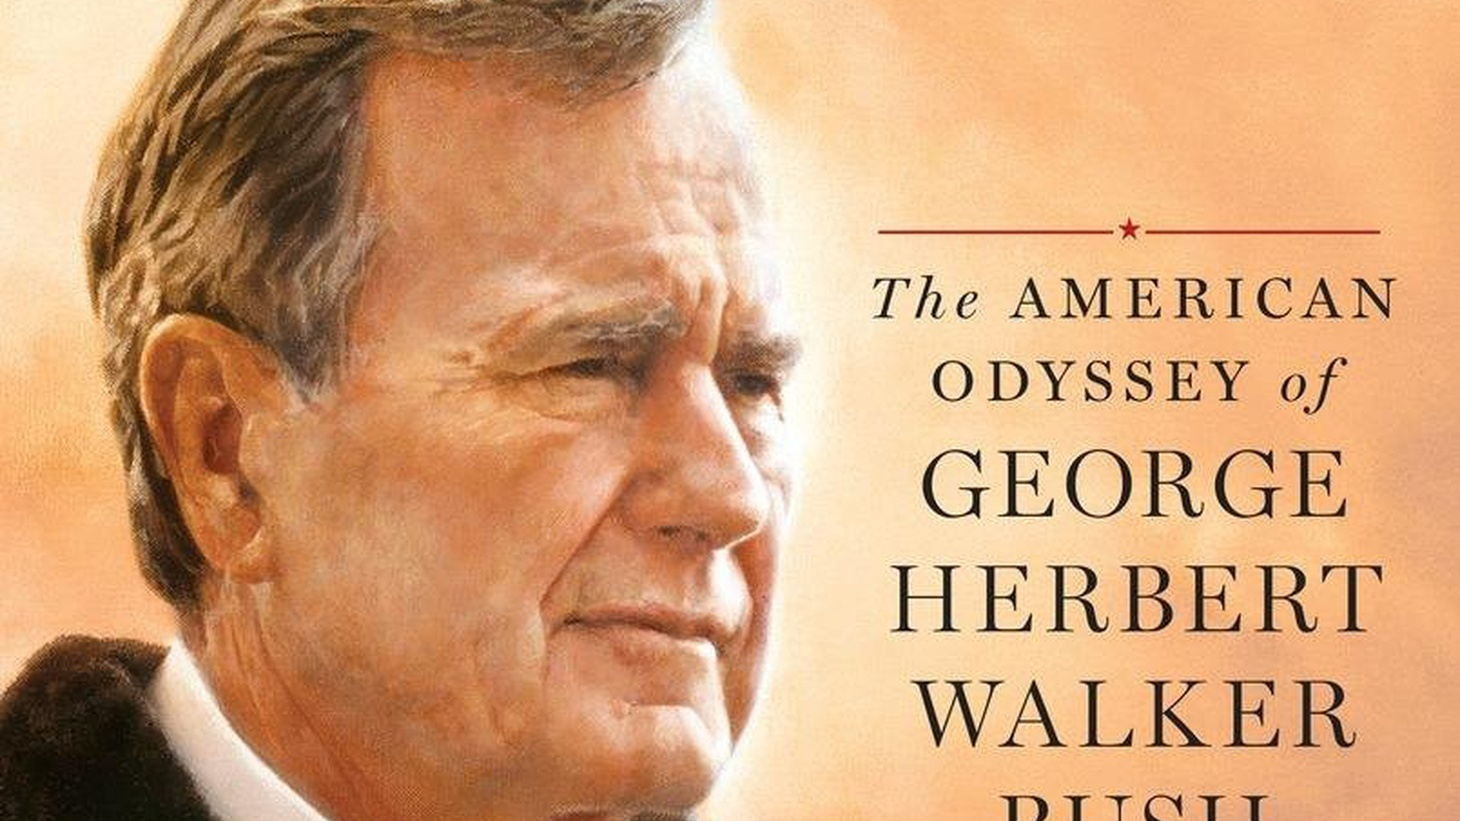 Nine years of personal interviews with America's 41st President have produced 900-pages of sometimes intimate revelations about George H. W. Bush. The 41st president is the subject of the new book  Destiny and Power: The American Odyssey of George Herbert Walker Bush .